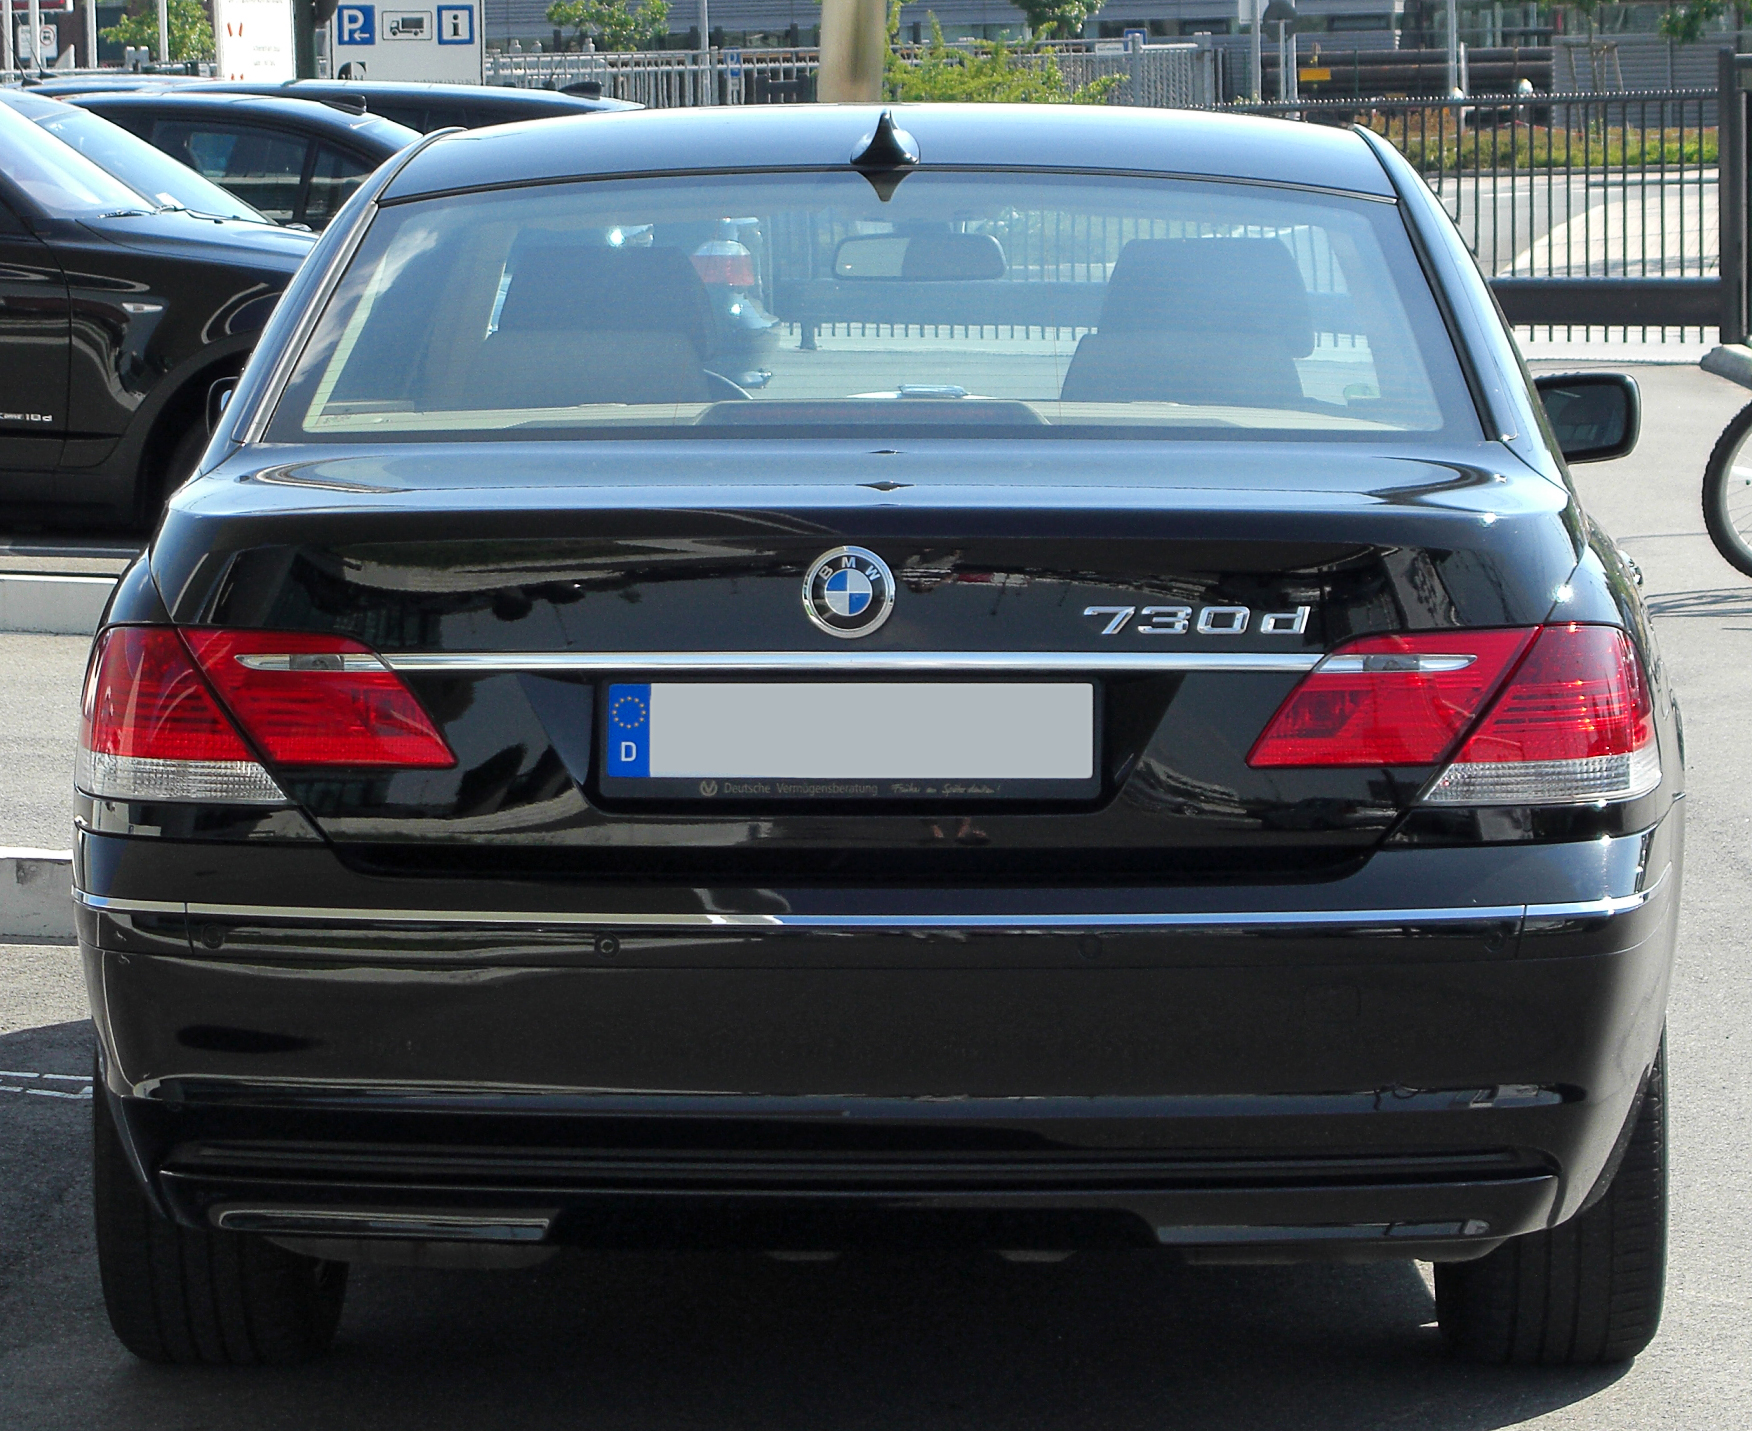 File:BMW 730d (E65) Facelift rear-1 20100718.jpg - Wikimedia Commons